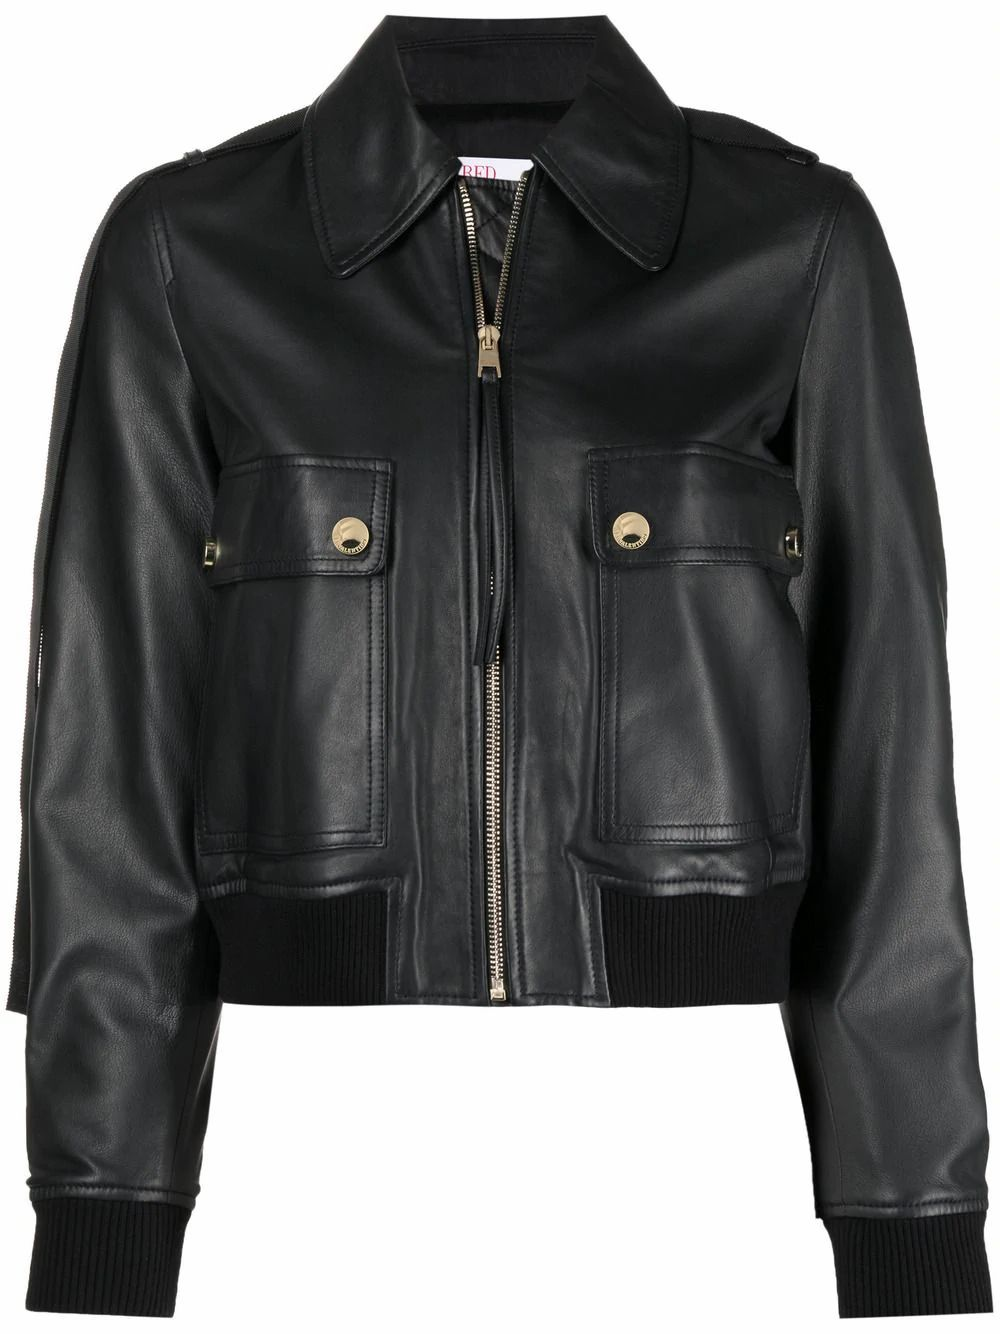 Red Valentino RED VALENTINO WOMEN'S BLACK LEATHER OUTERWEAR JACKET